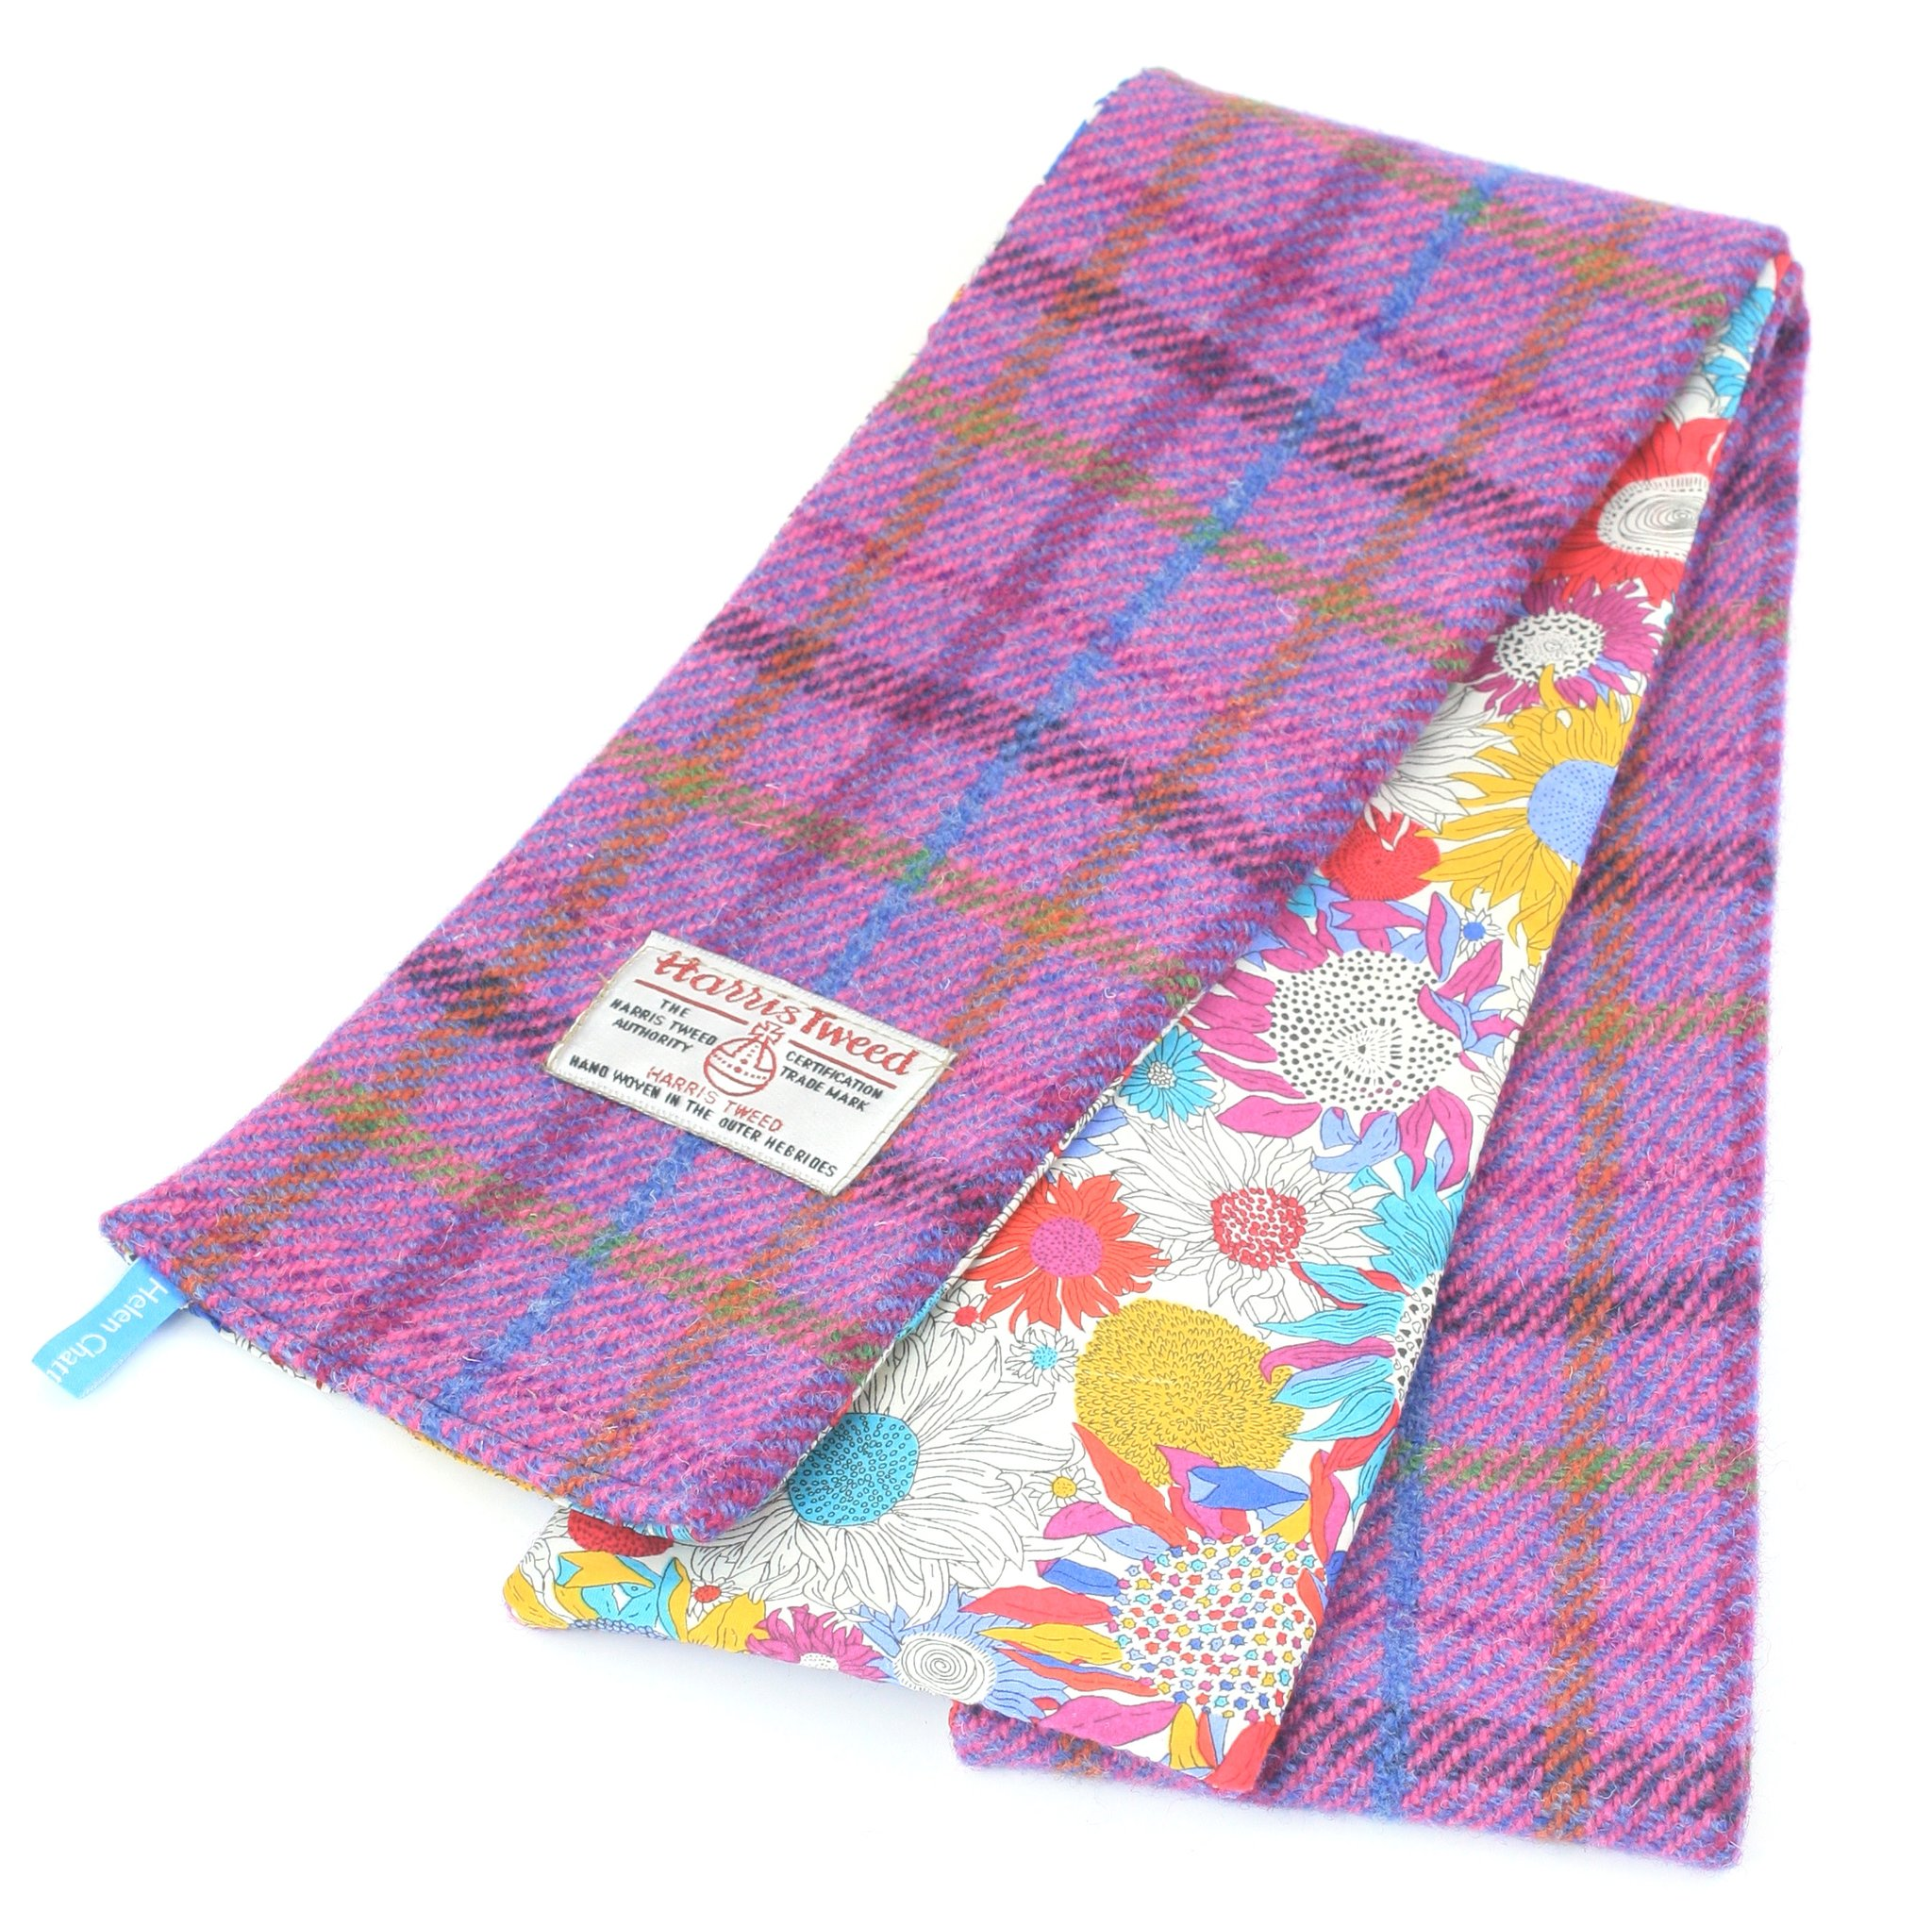 Bright Lilac Sunflower harris tweed skinny scarf by Helen Chatterton textiles